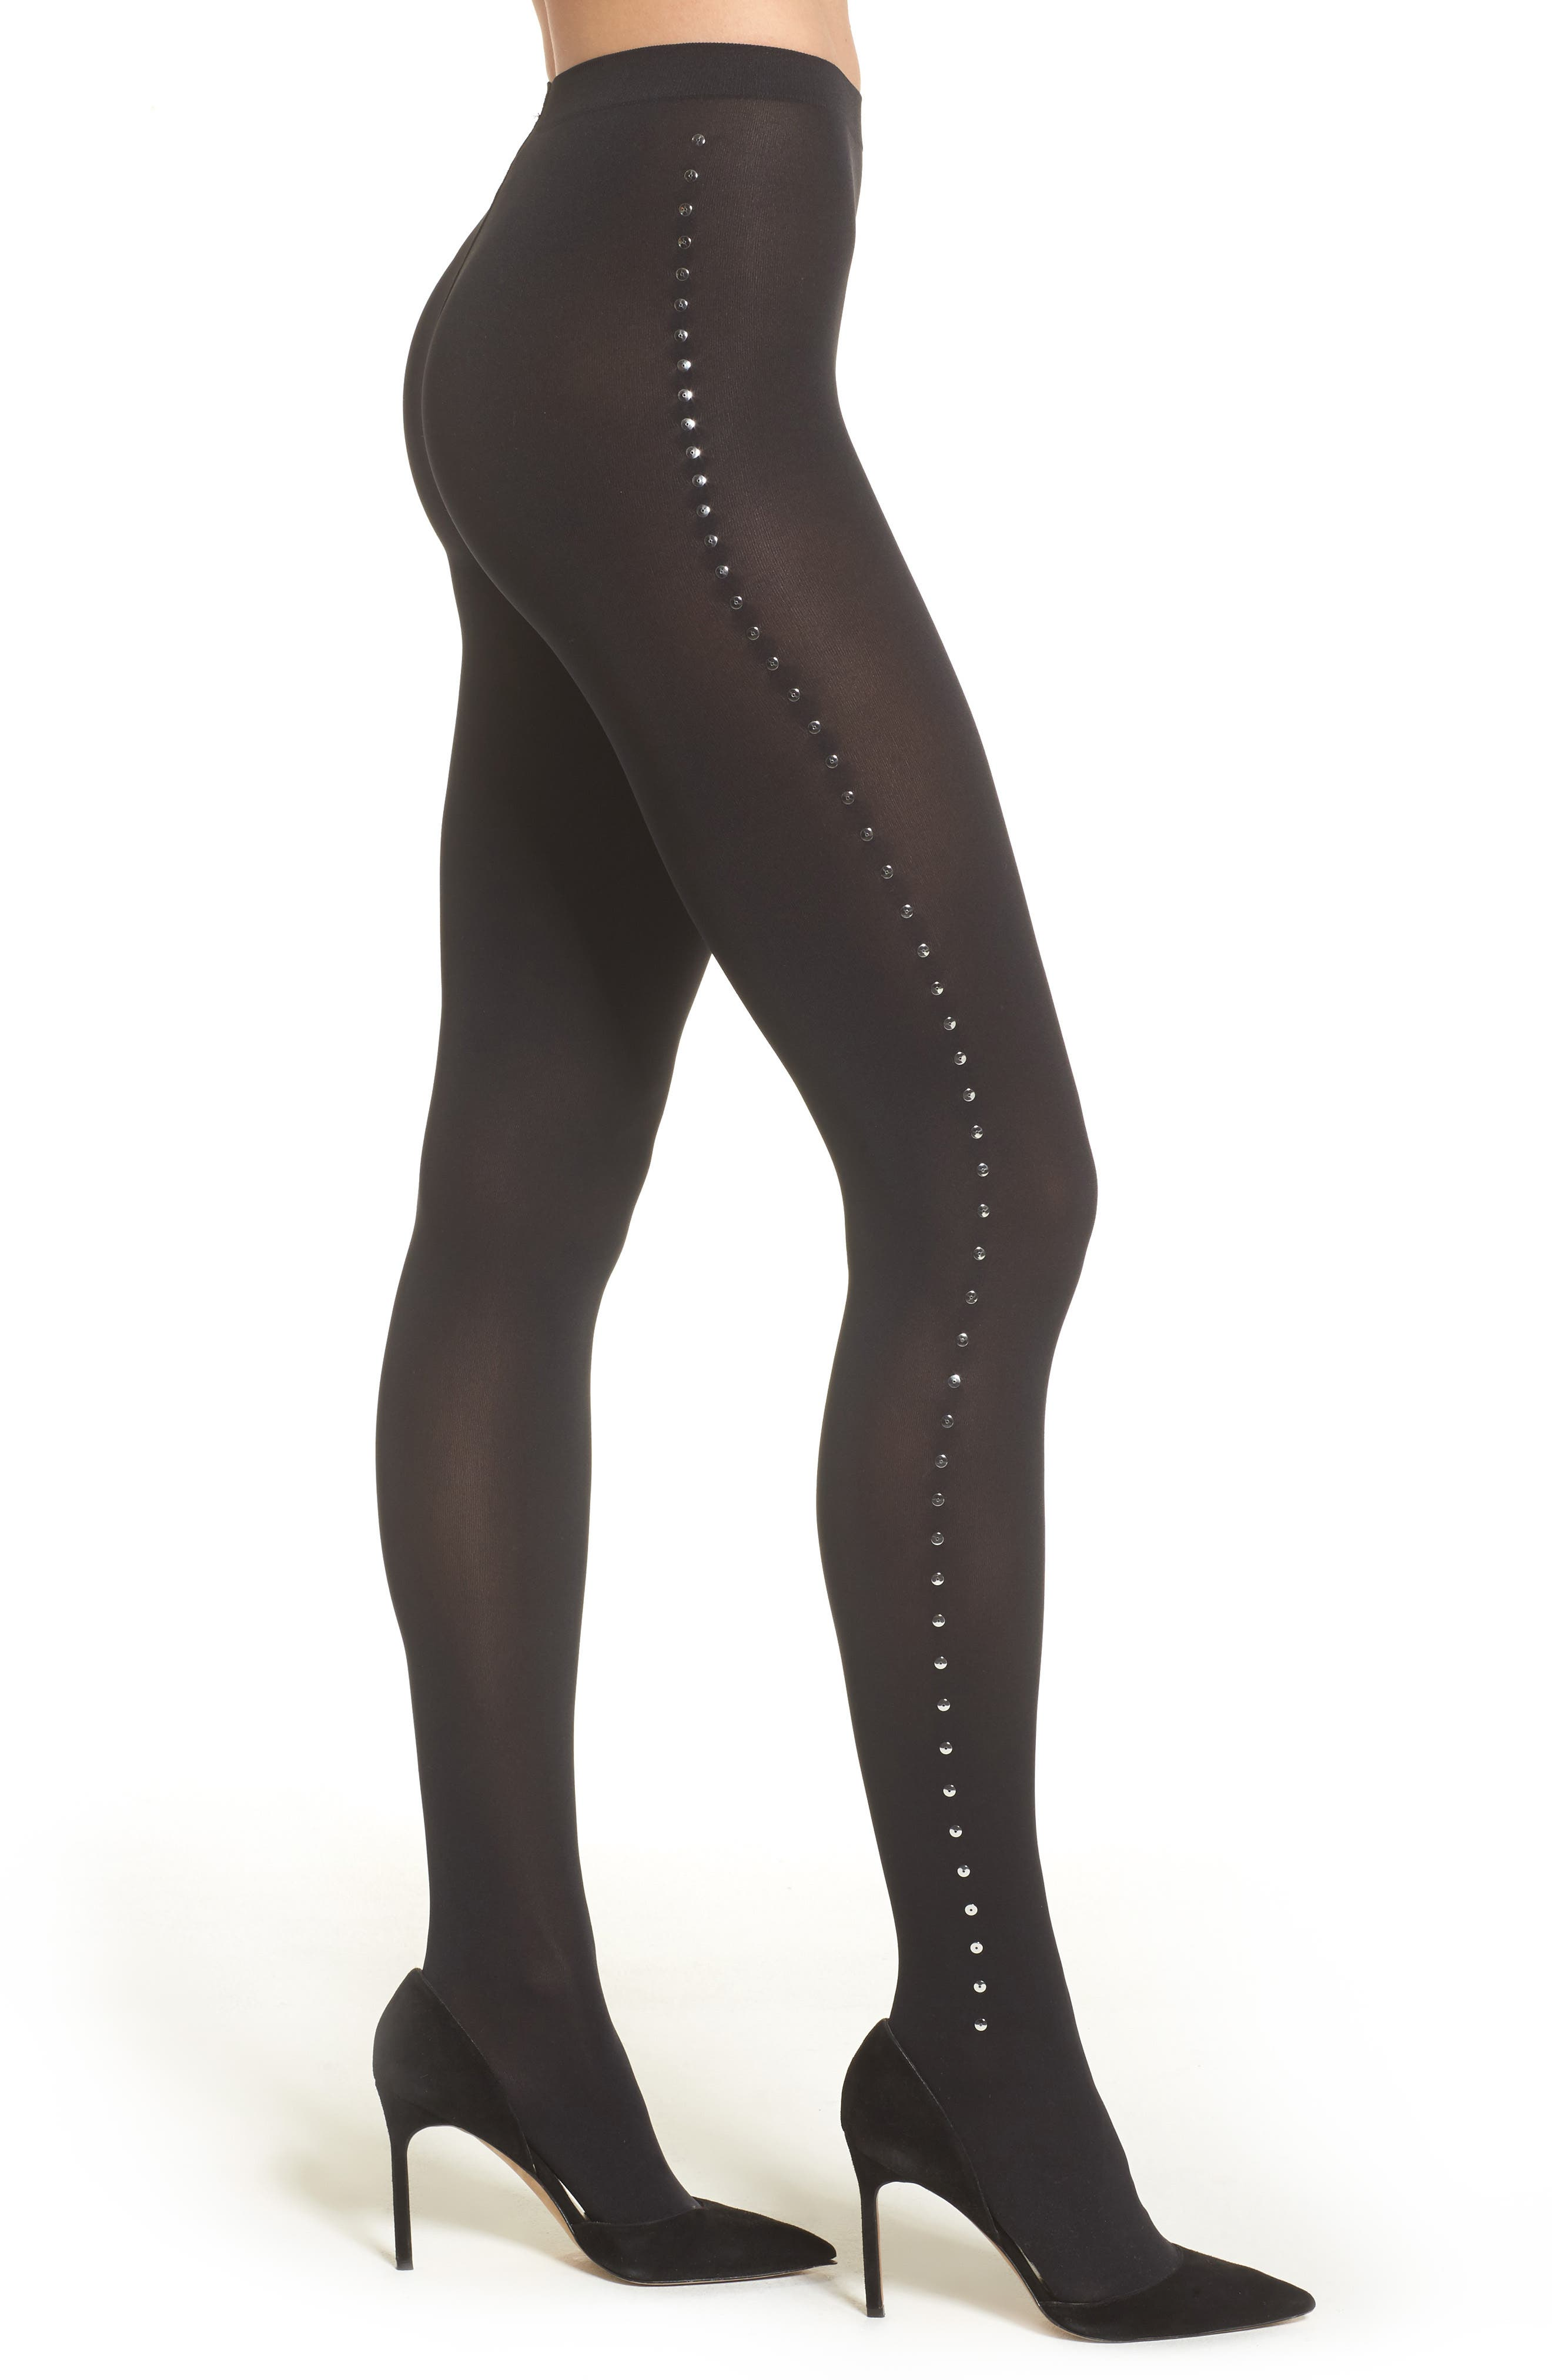 Embellished Tights,                         Main,                         color, Black/ Silver